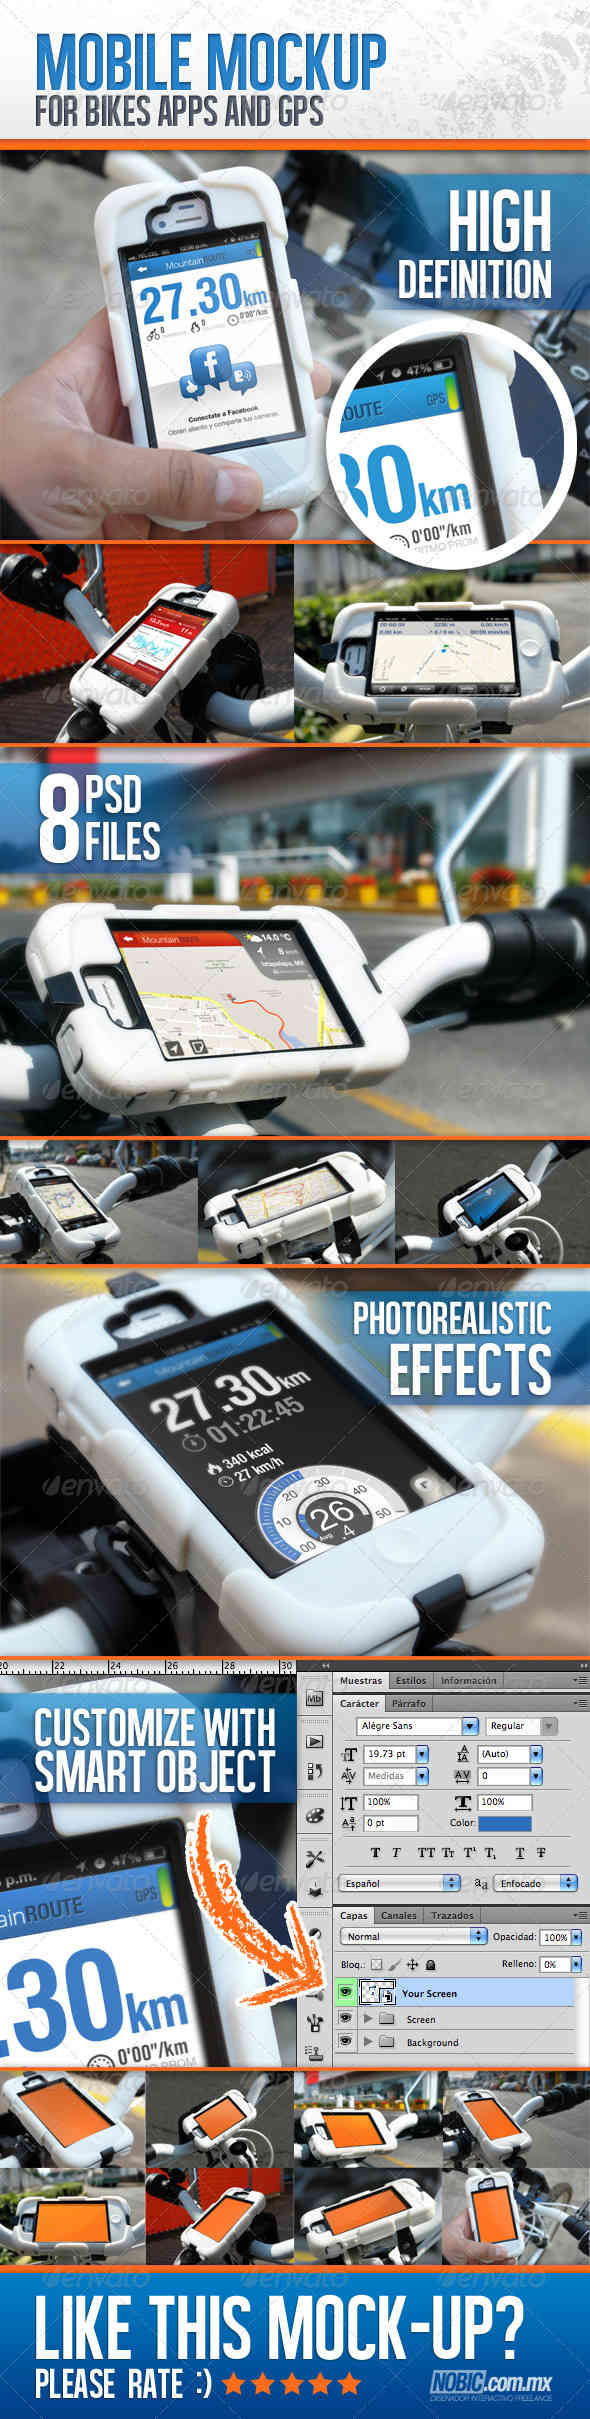 Bike Mockup for Apps and GPS Devices